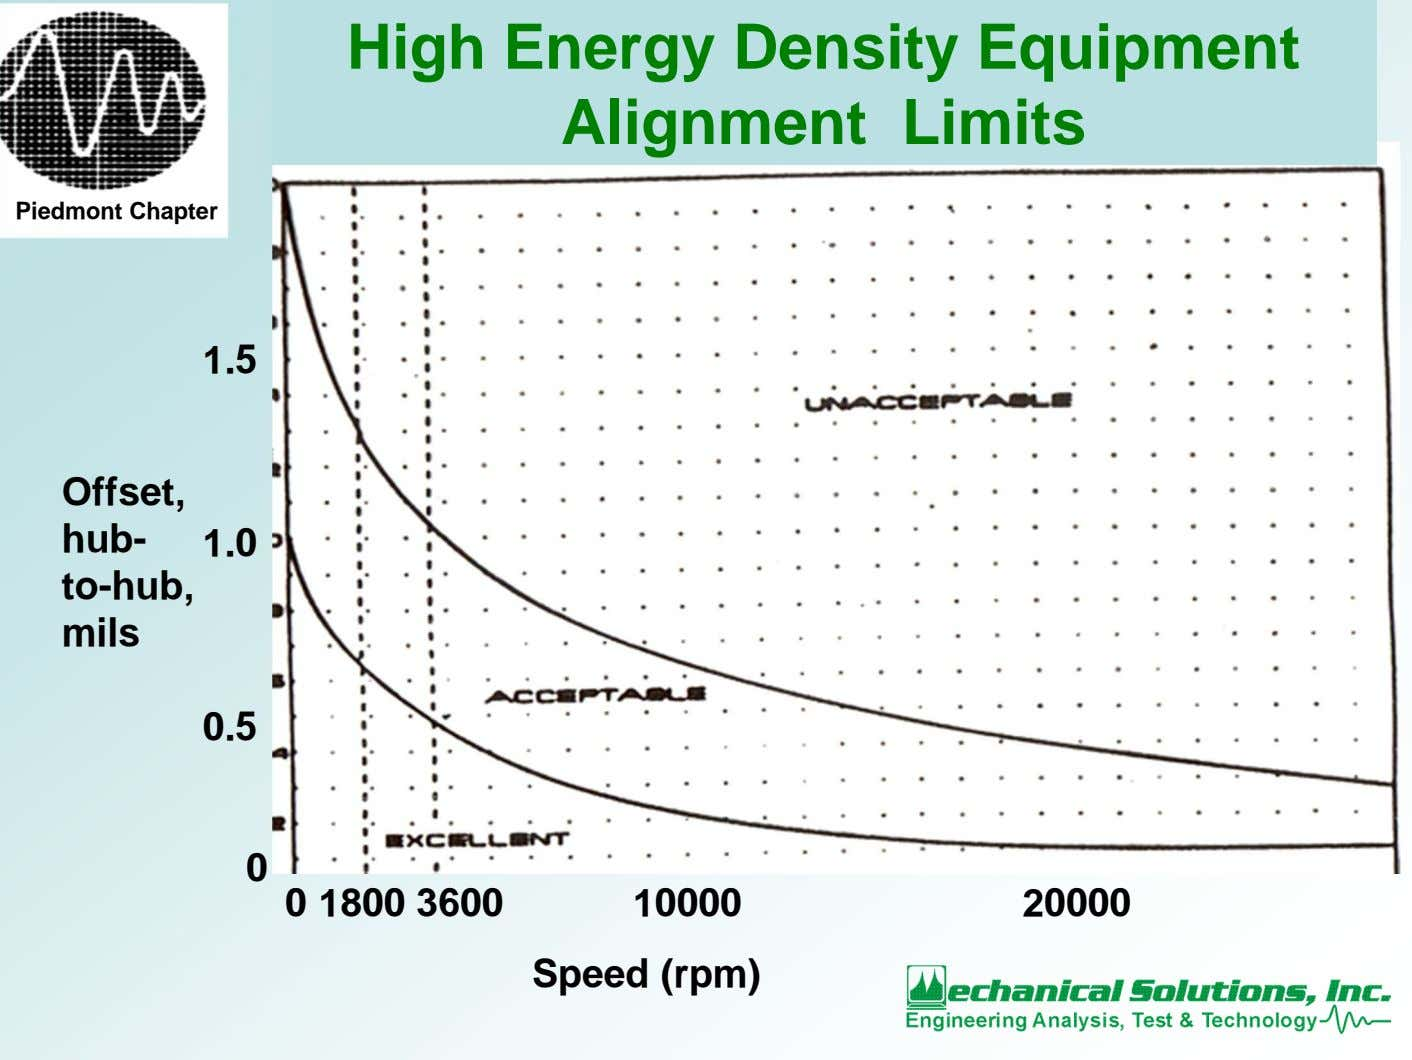 High Energy Density Equipment Alignment Limits Piedmont Chapter 1.5 Offset, hub- 1.0 to-hub, mils 0.5